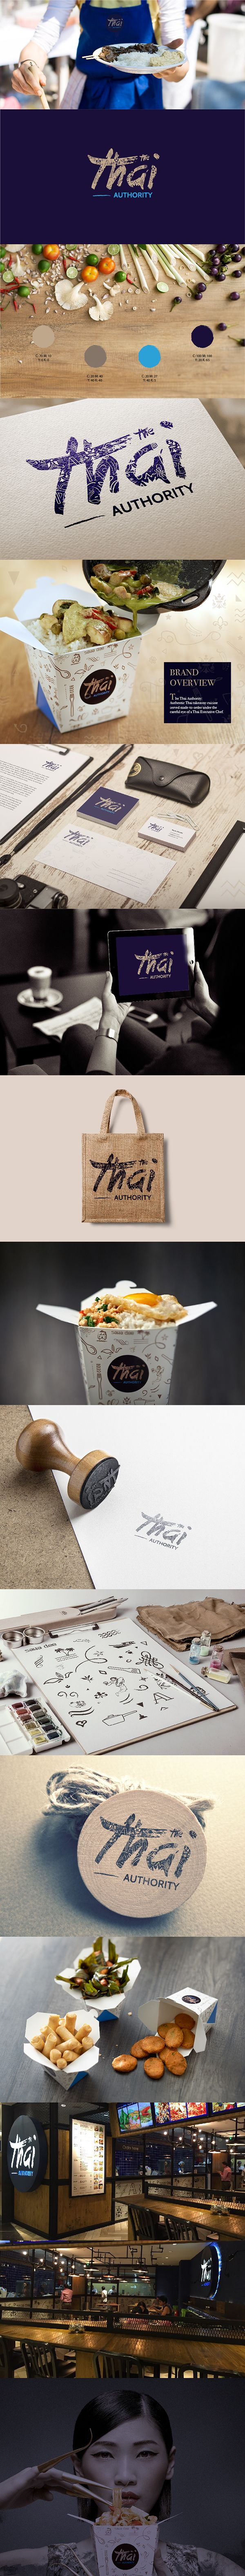 Client: The Thai AuthorityMedium: Art Direction, Logo & Corporate IdentityAbout: The Thai Authority is an authentic Thai takeaway cuisine served made-to-order under the careful eye of a Thai Executive Chef.